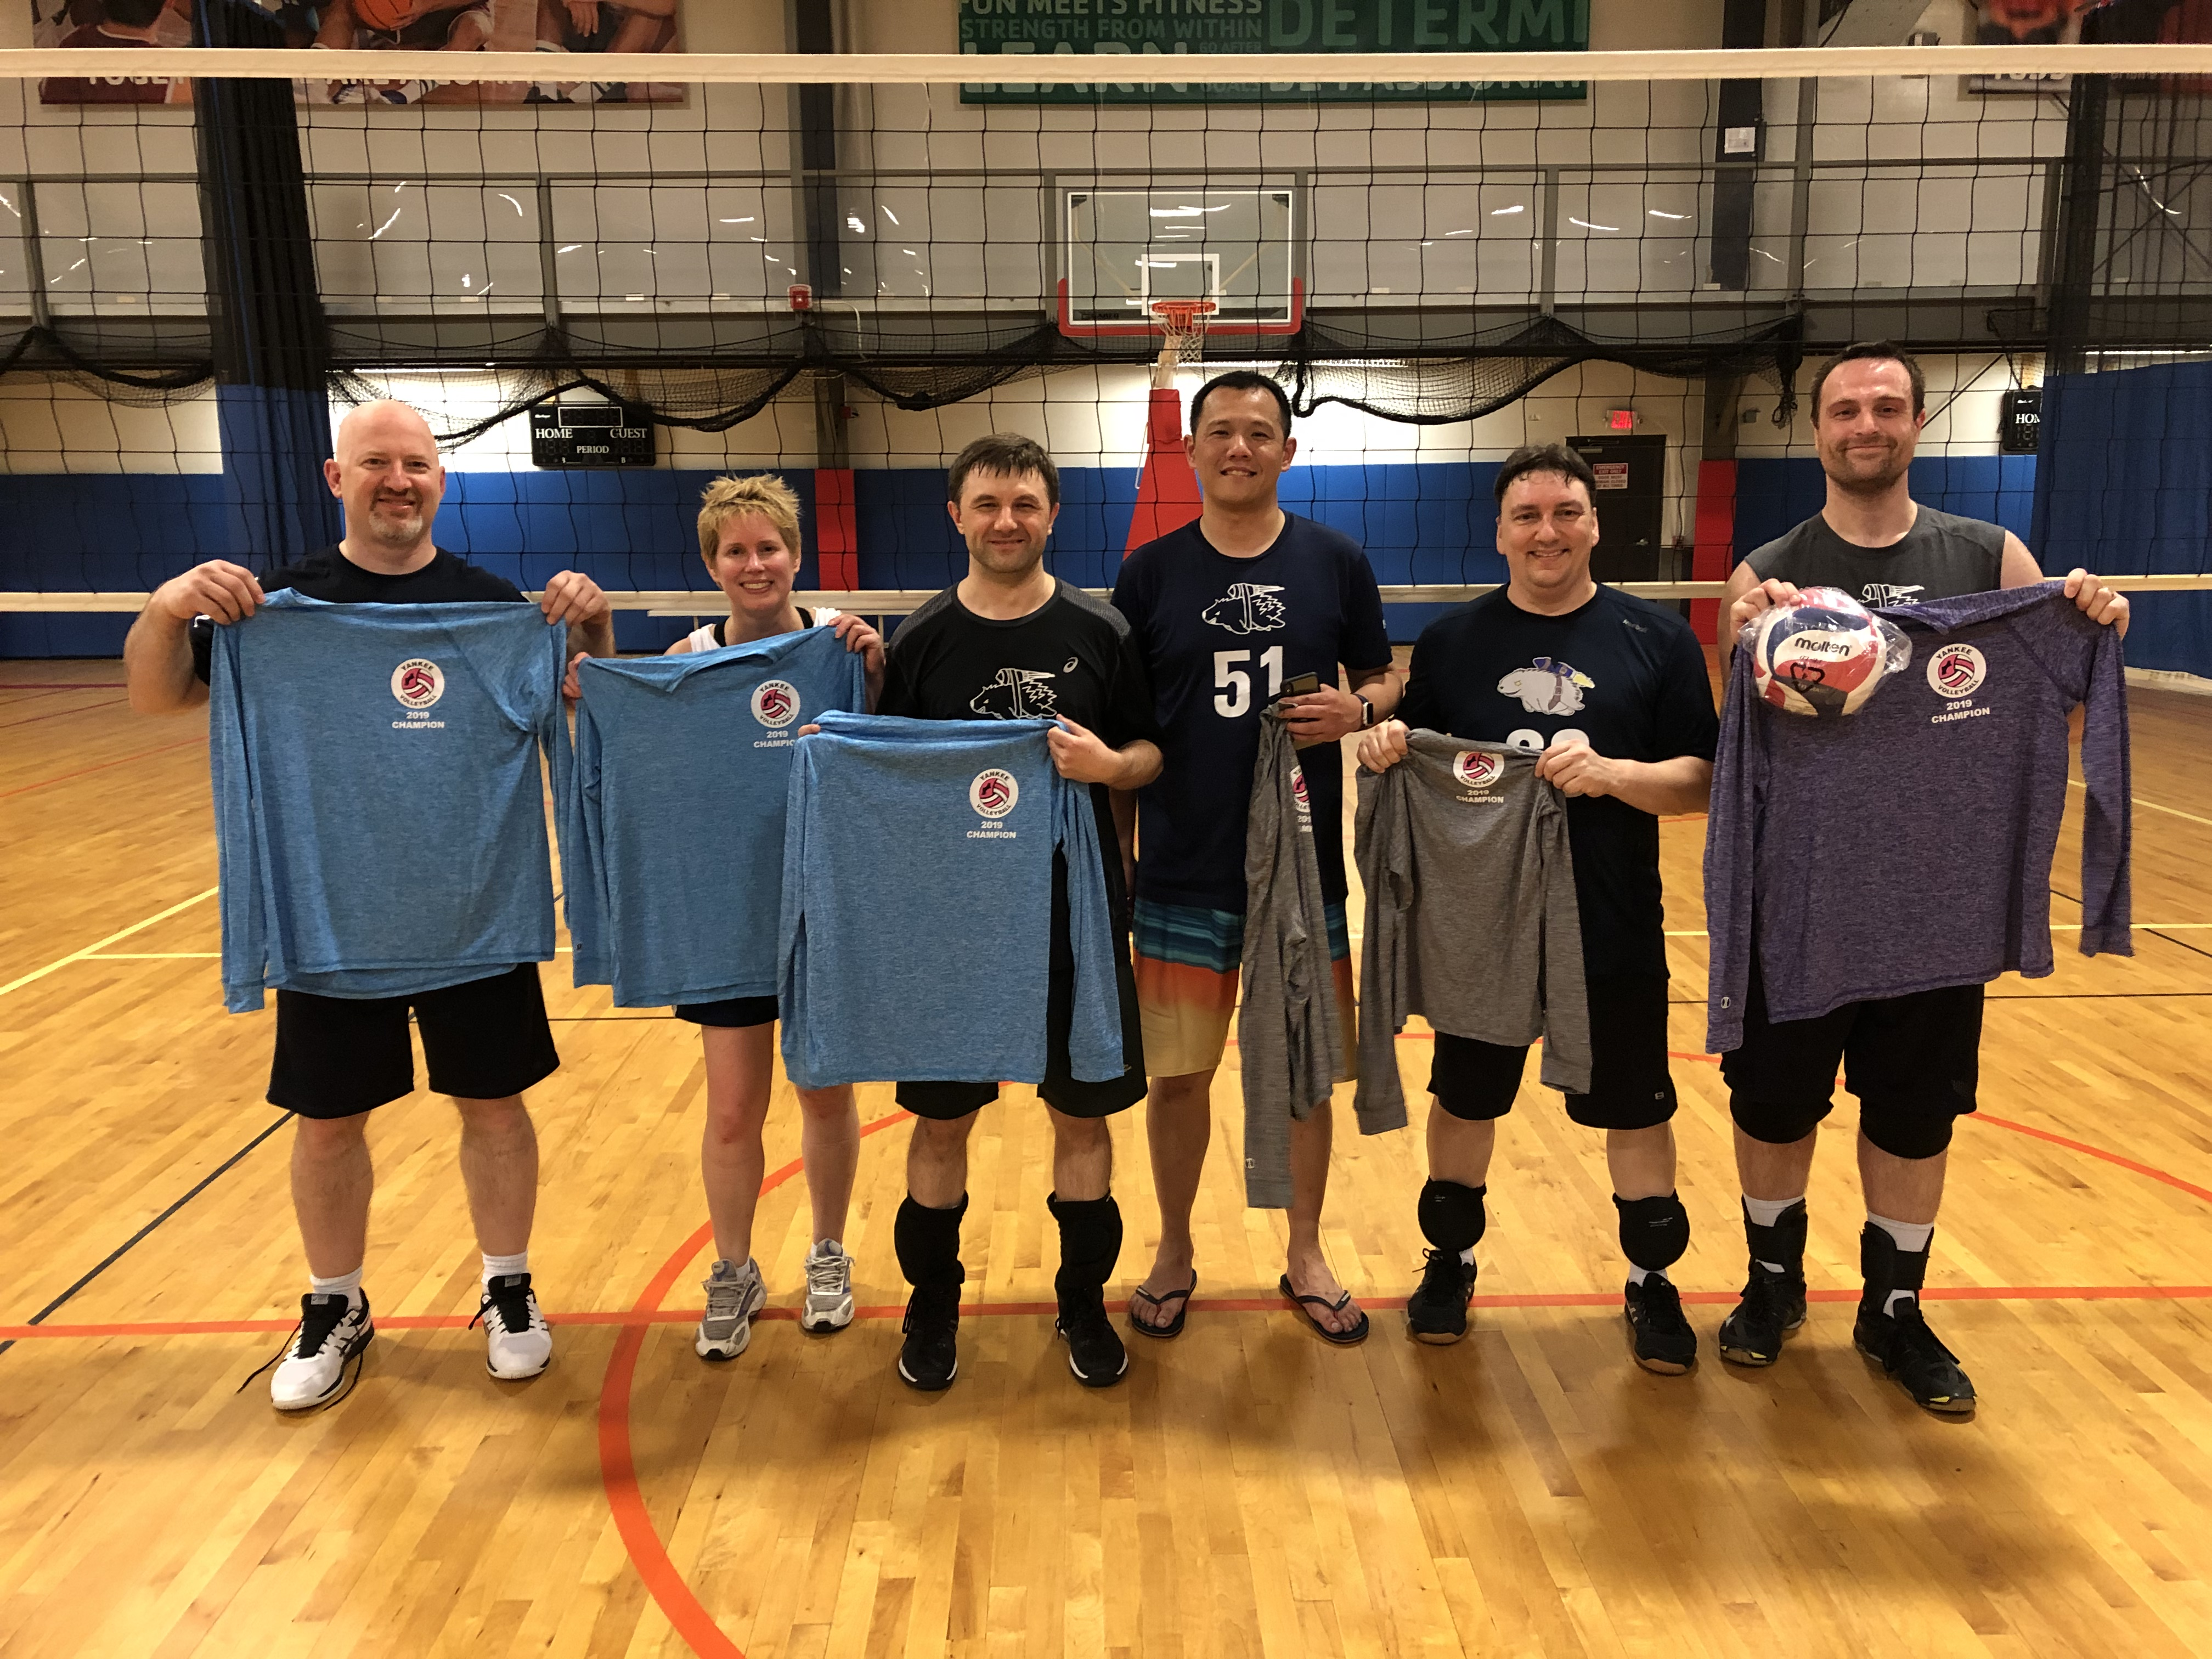 5/11/19 Flying Porcupines defeat No Diggity to win MC- champs